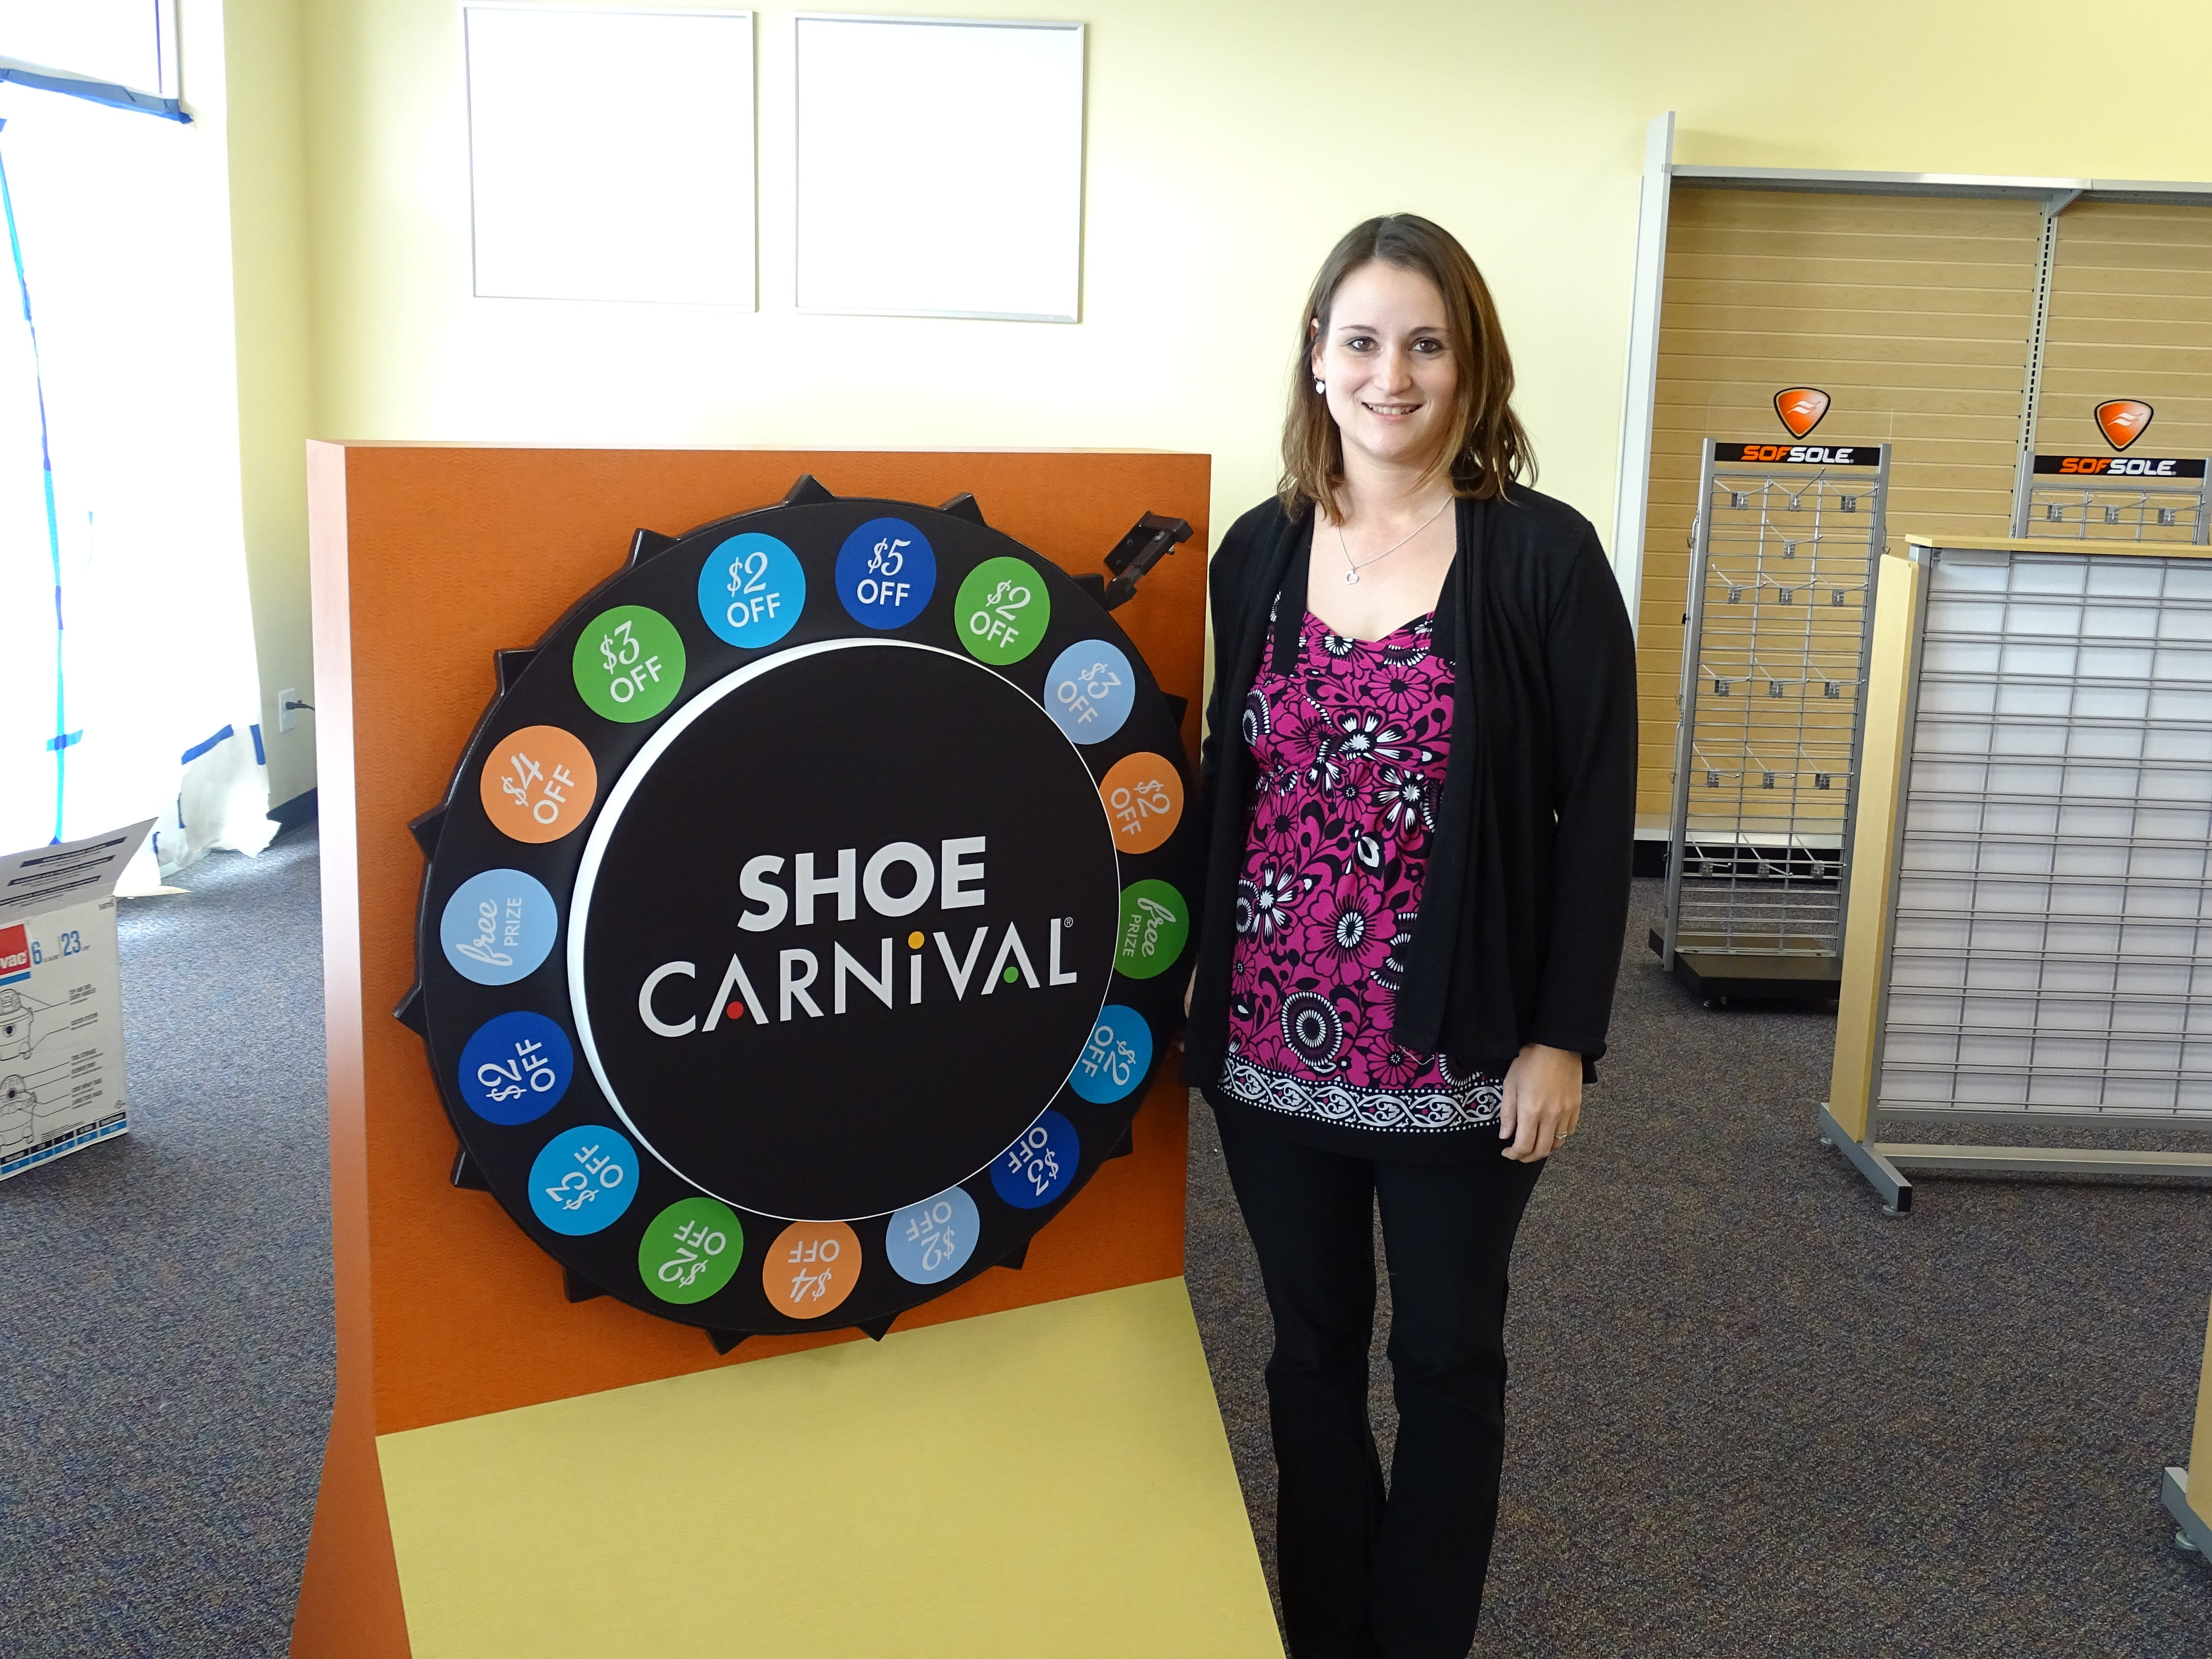 Shoe Carnival set to open this week